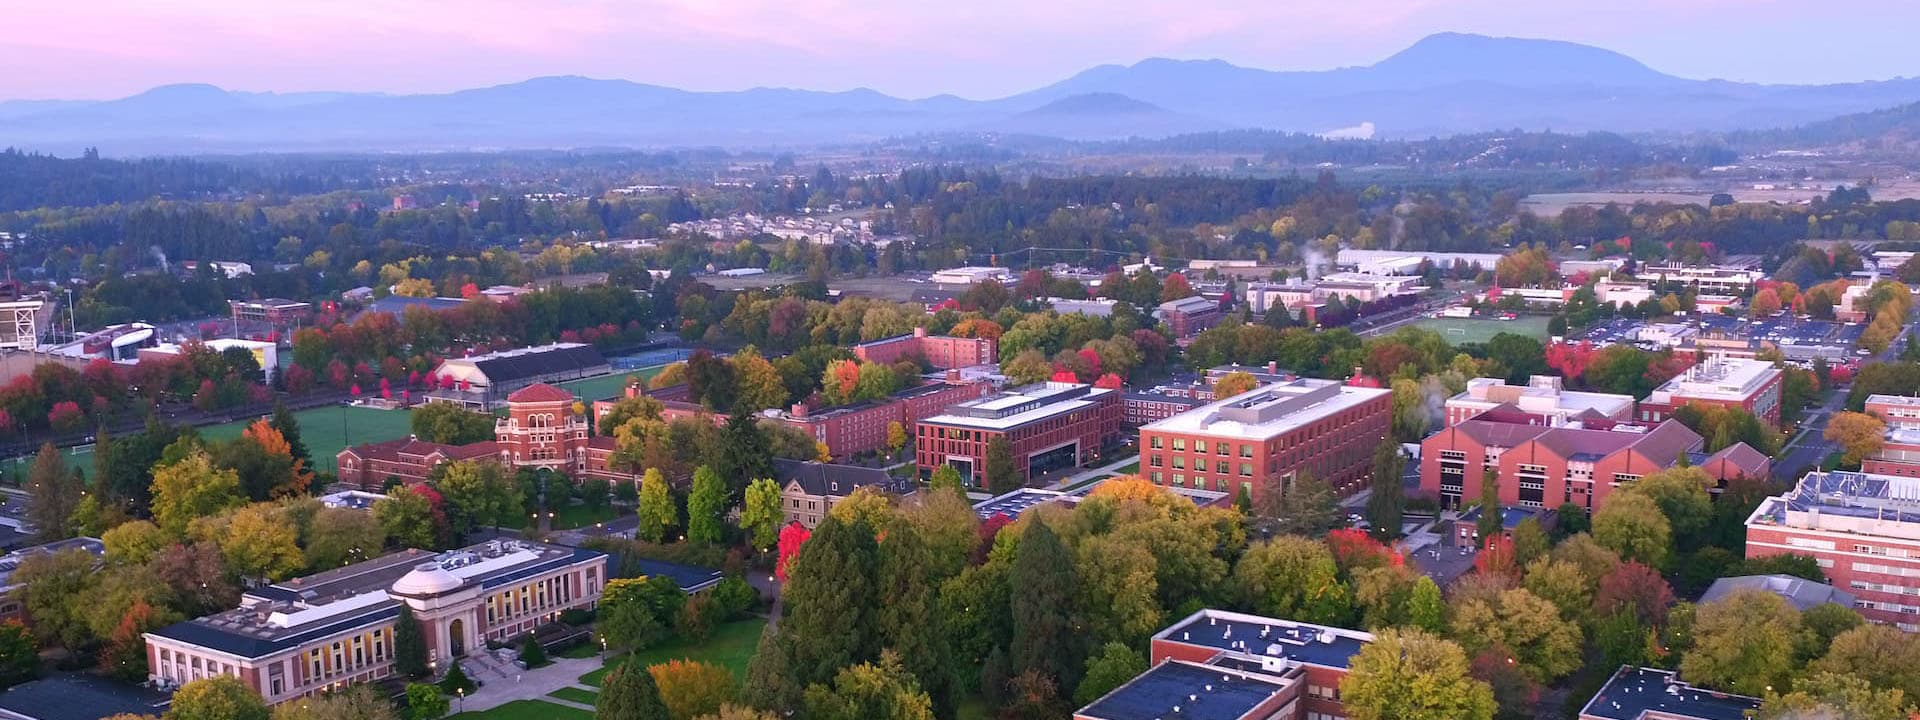 Oregon State University campus from the air